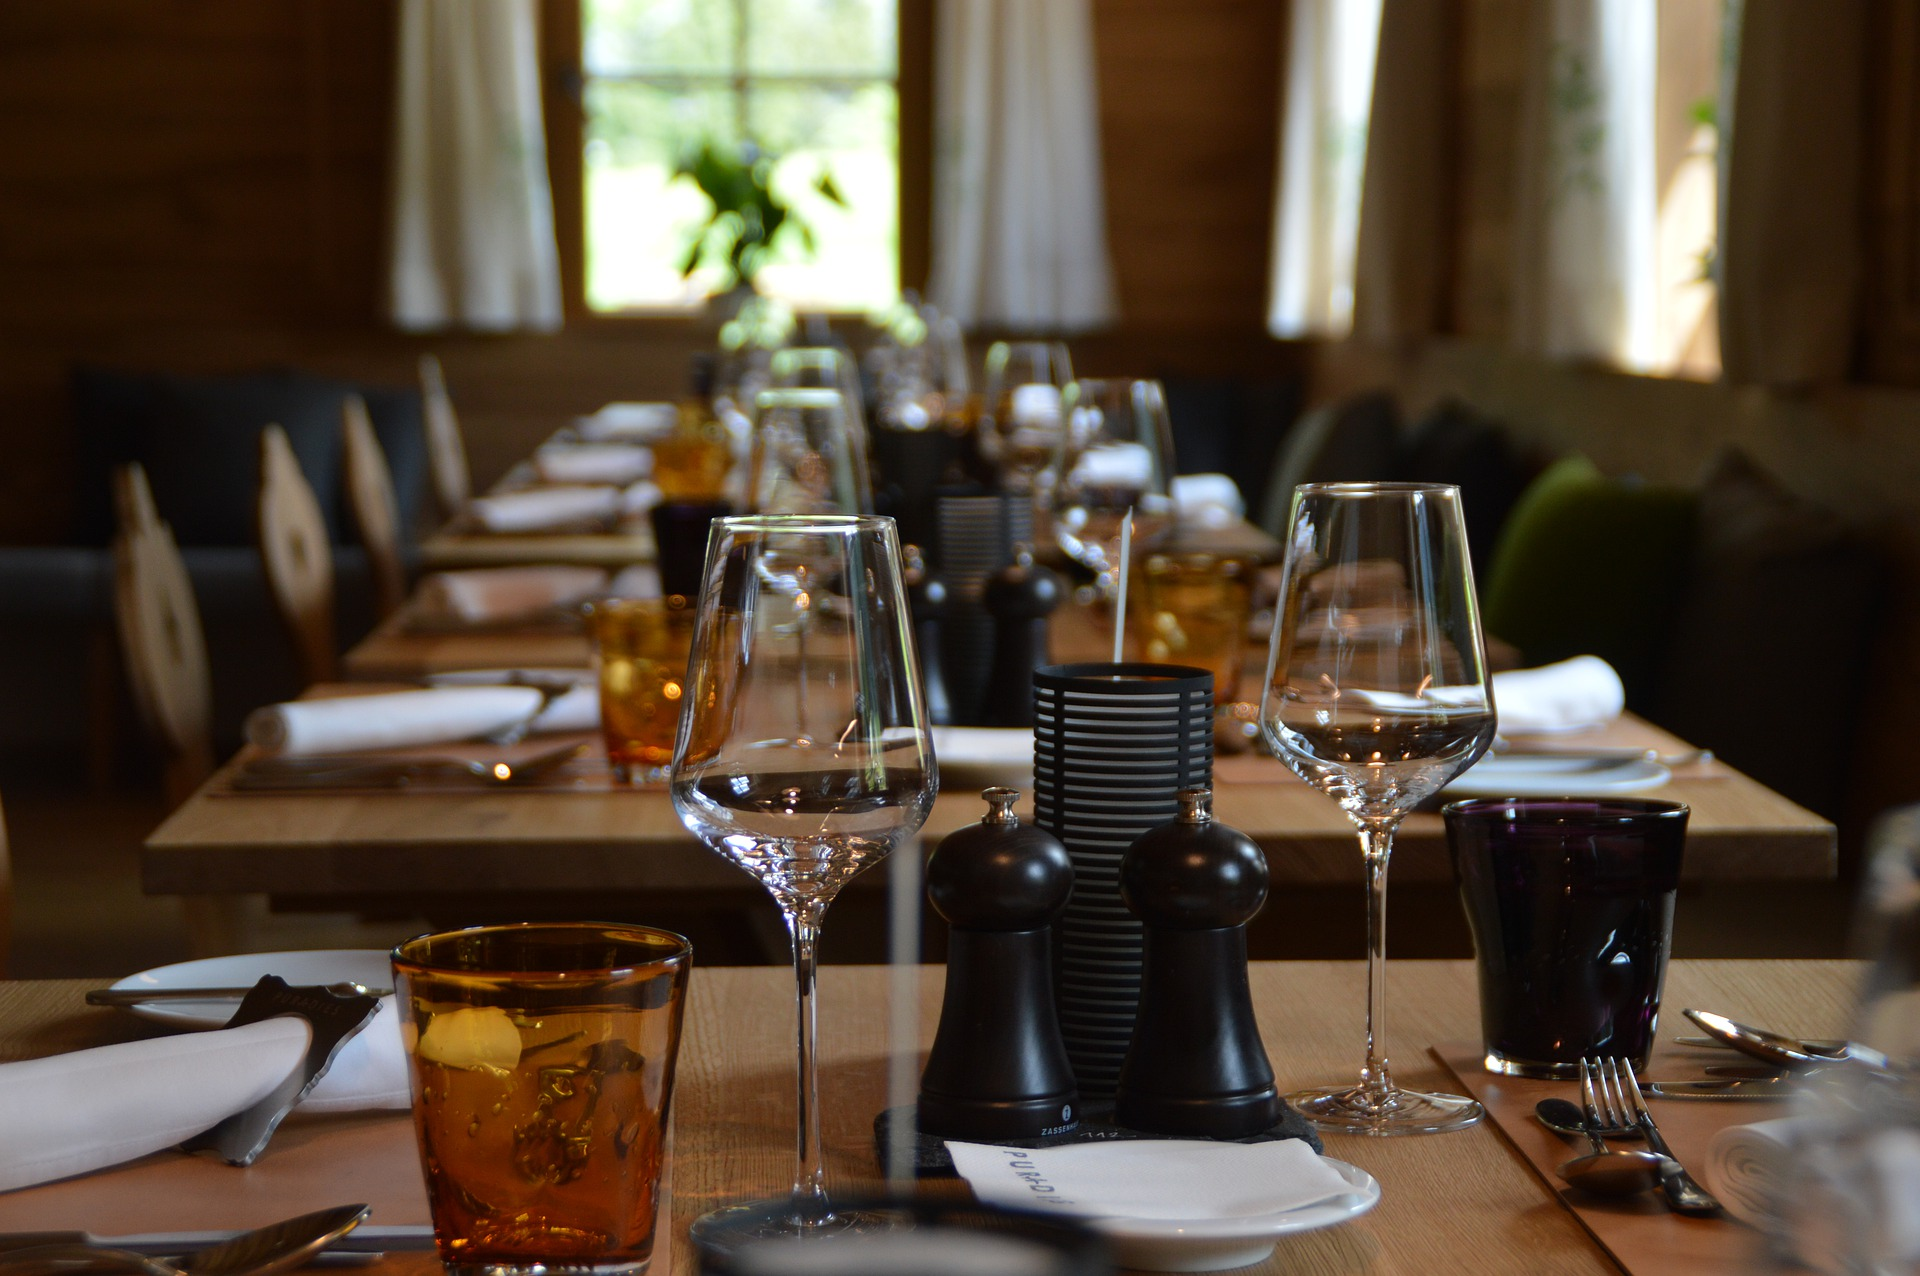 Photo of restaurant table and glasses